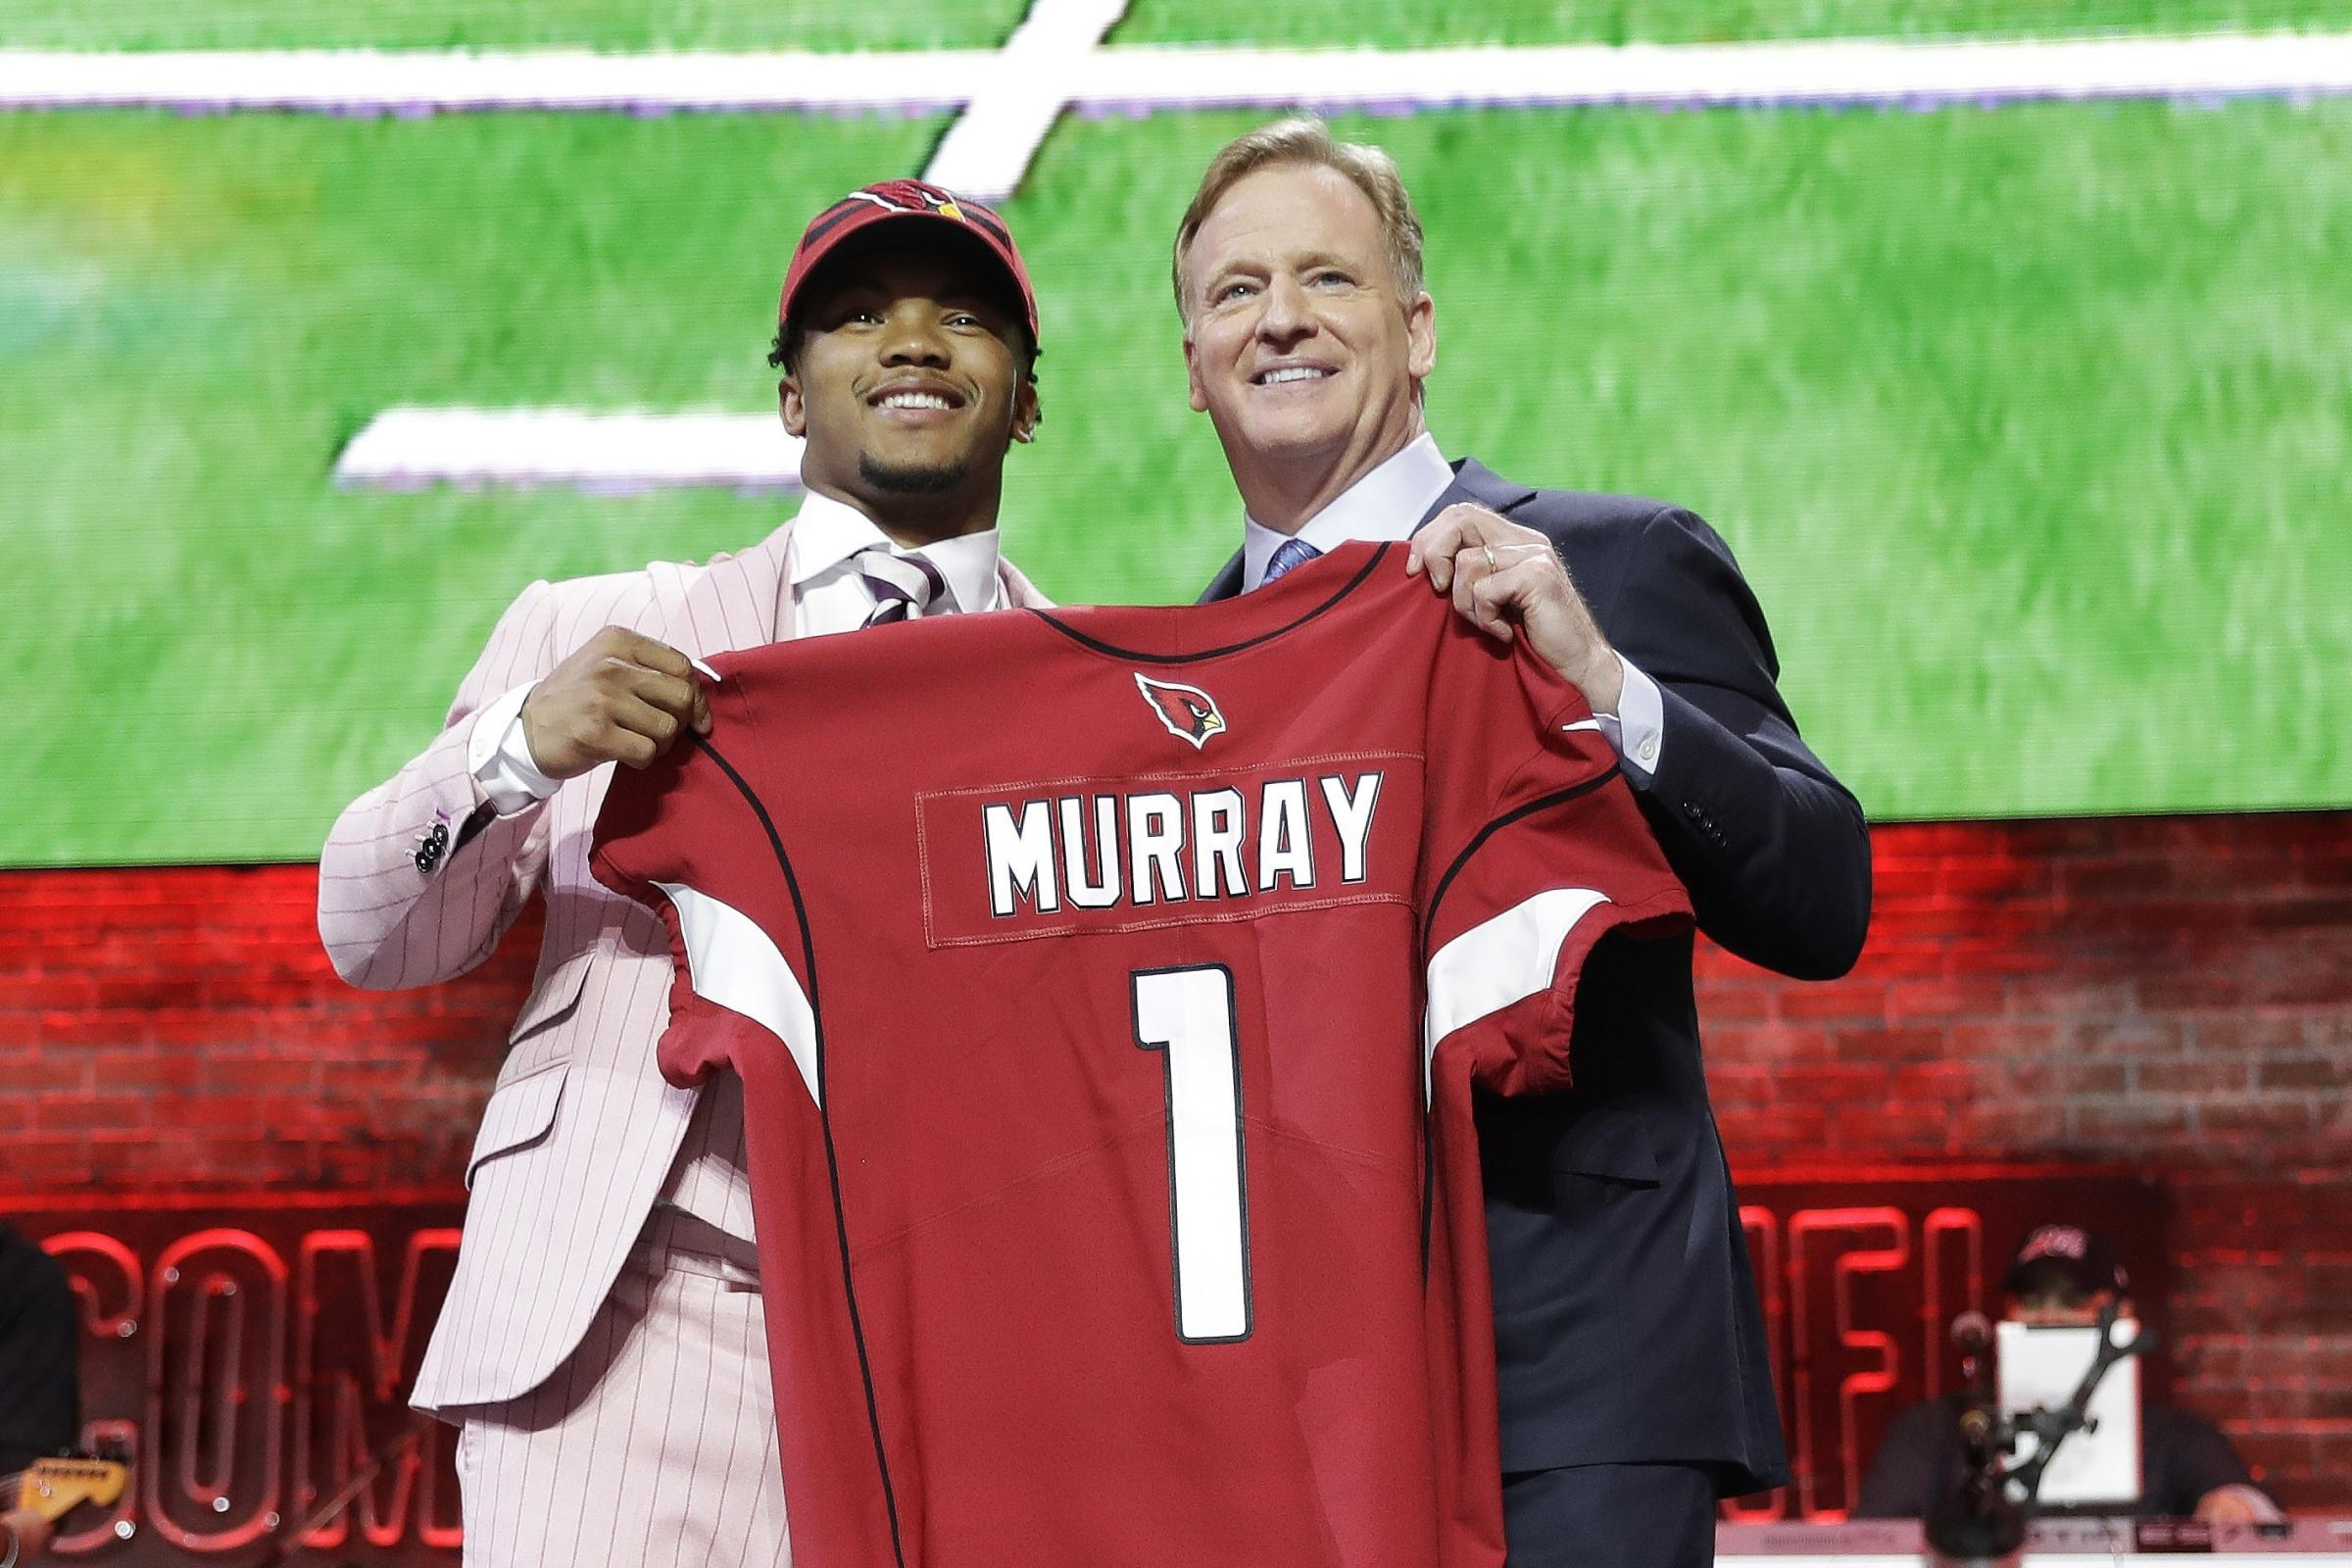 Kyler Murray after the Arizona Cardinals selected him in the first round at the NFL draft